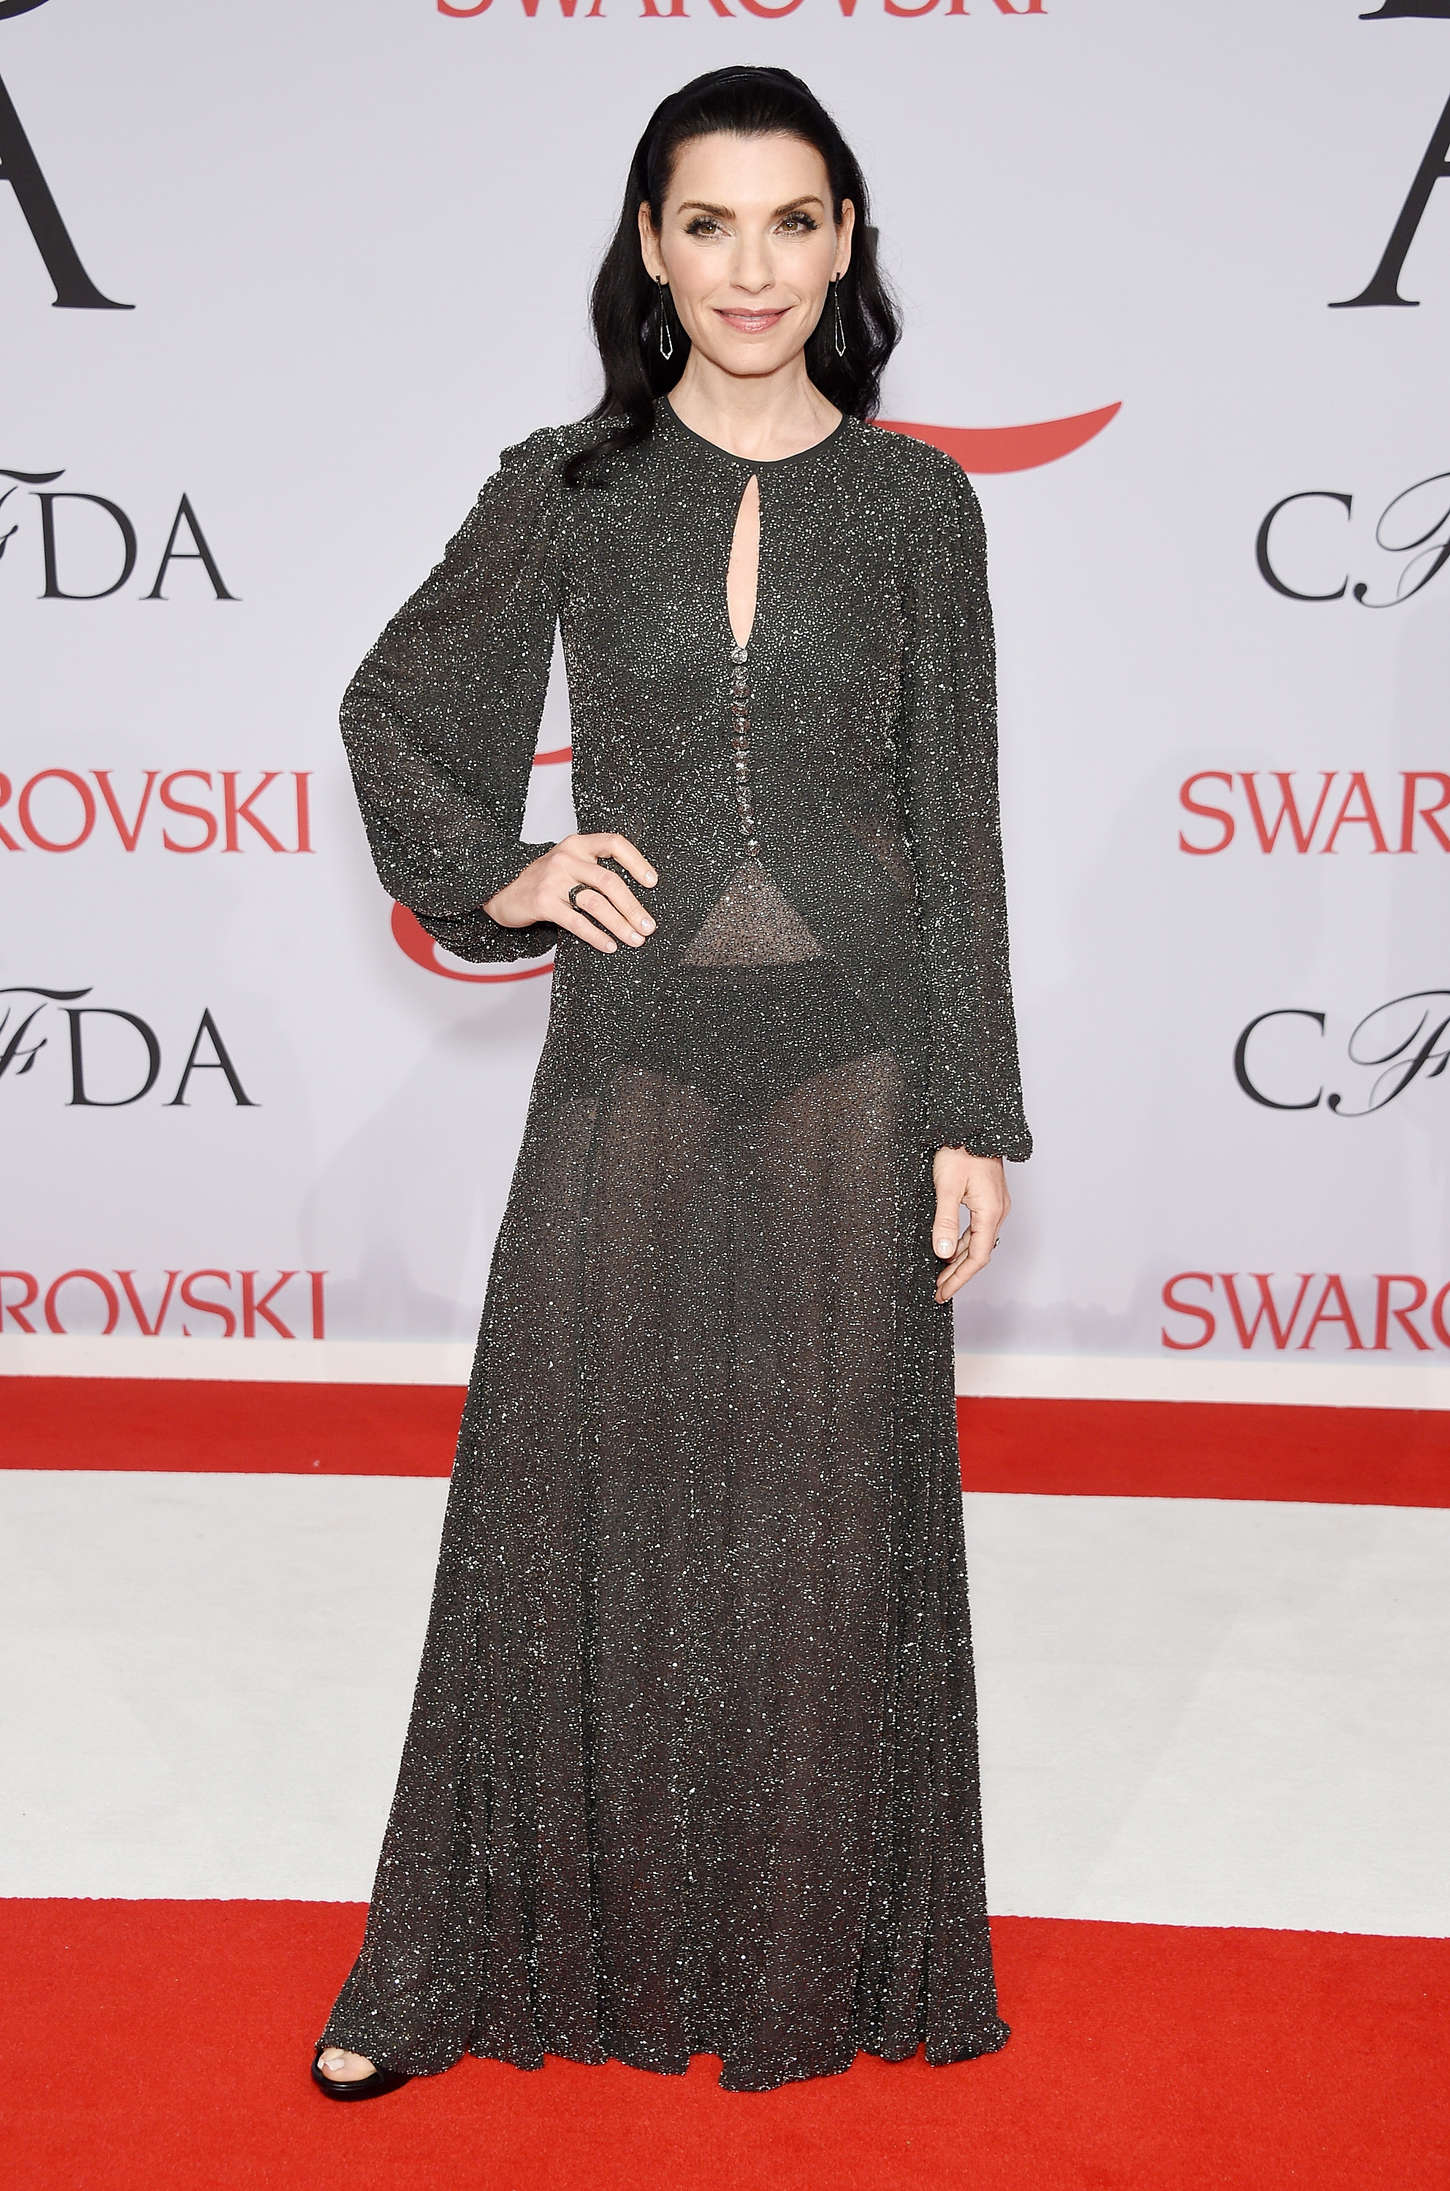 Julianna Margulies CFDA Fashion Awards in New York